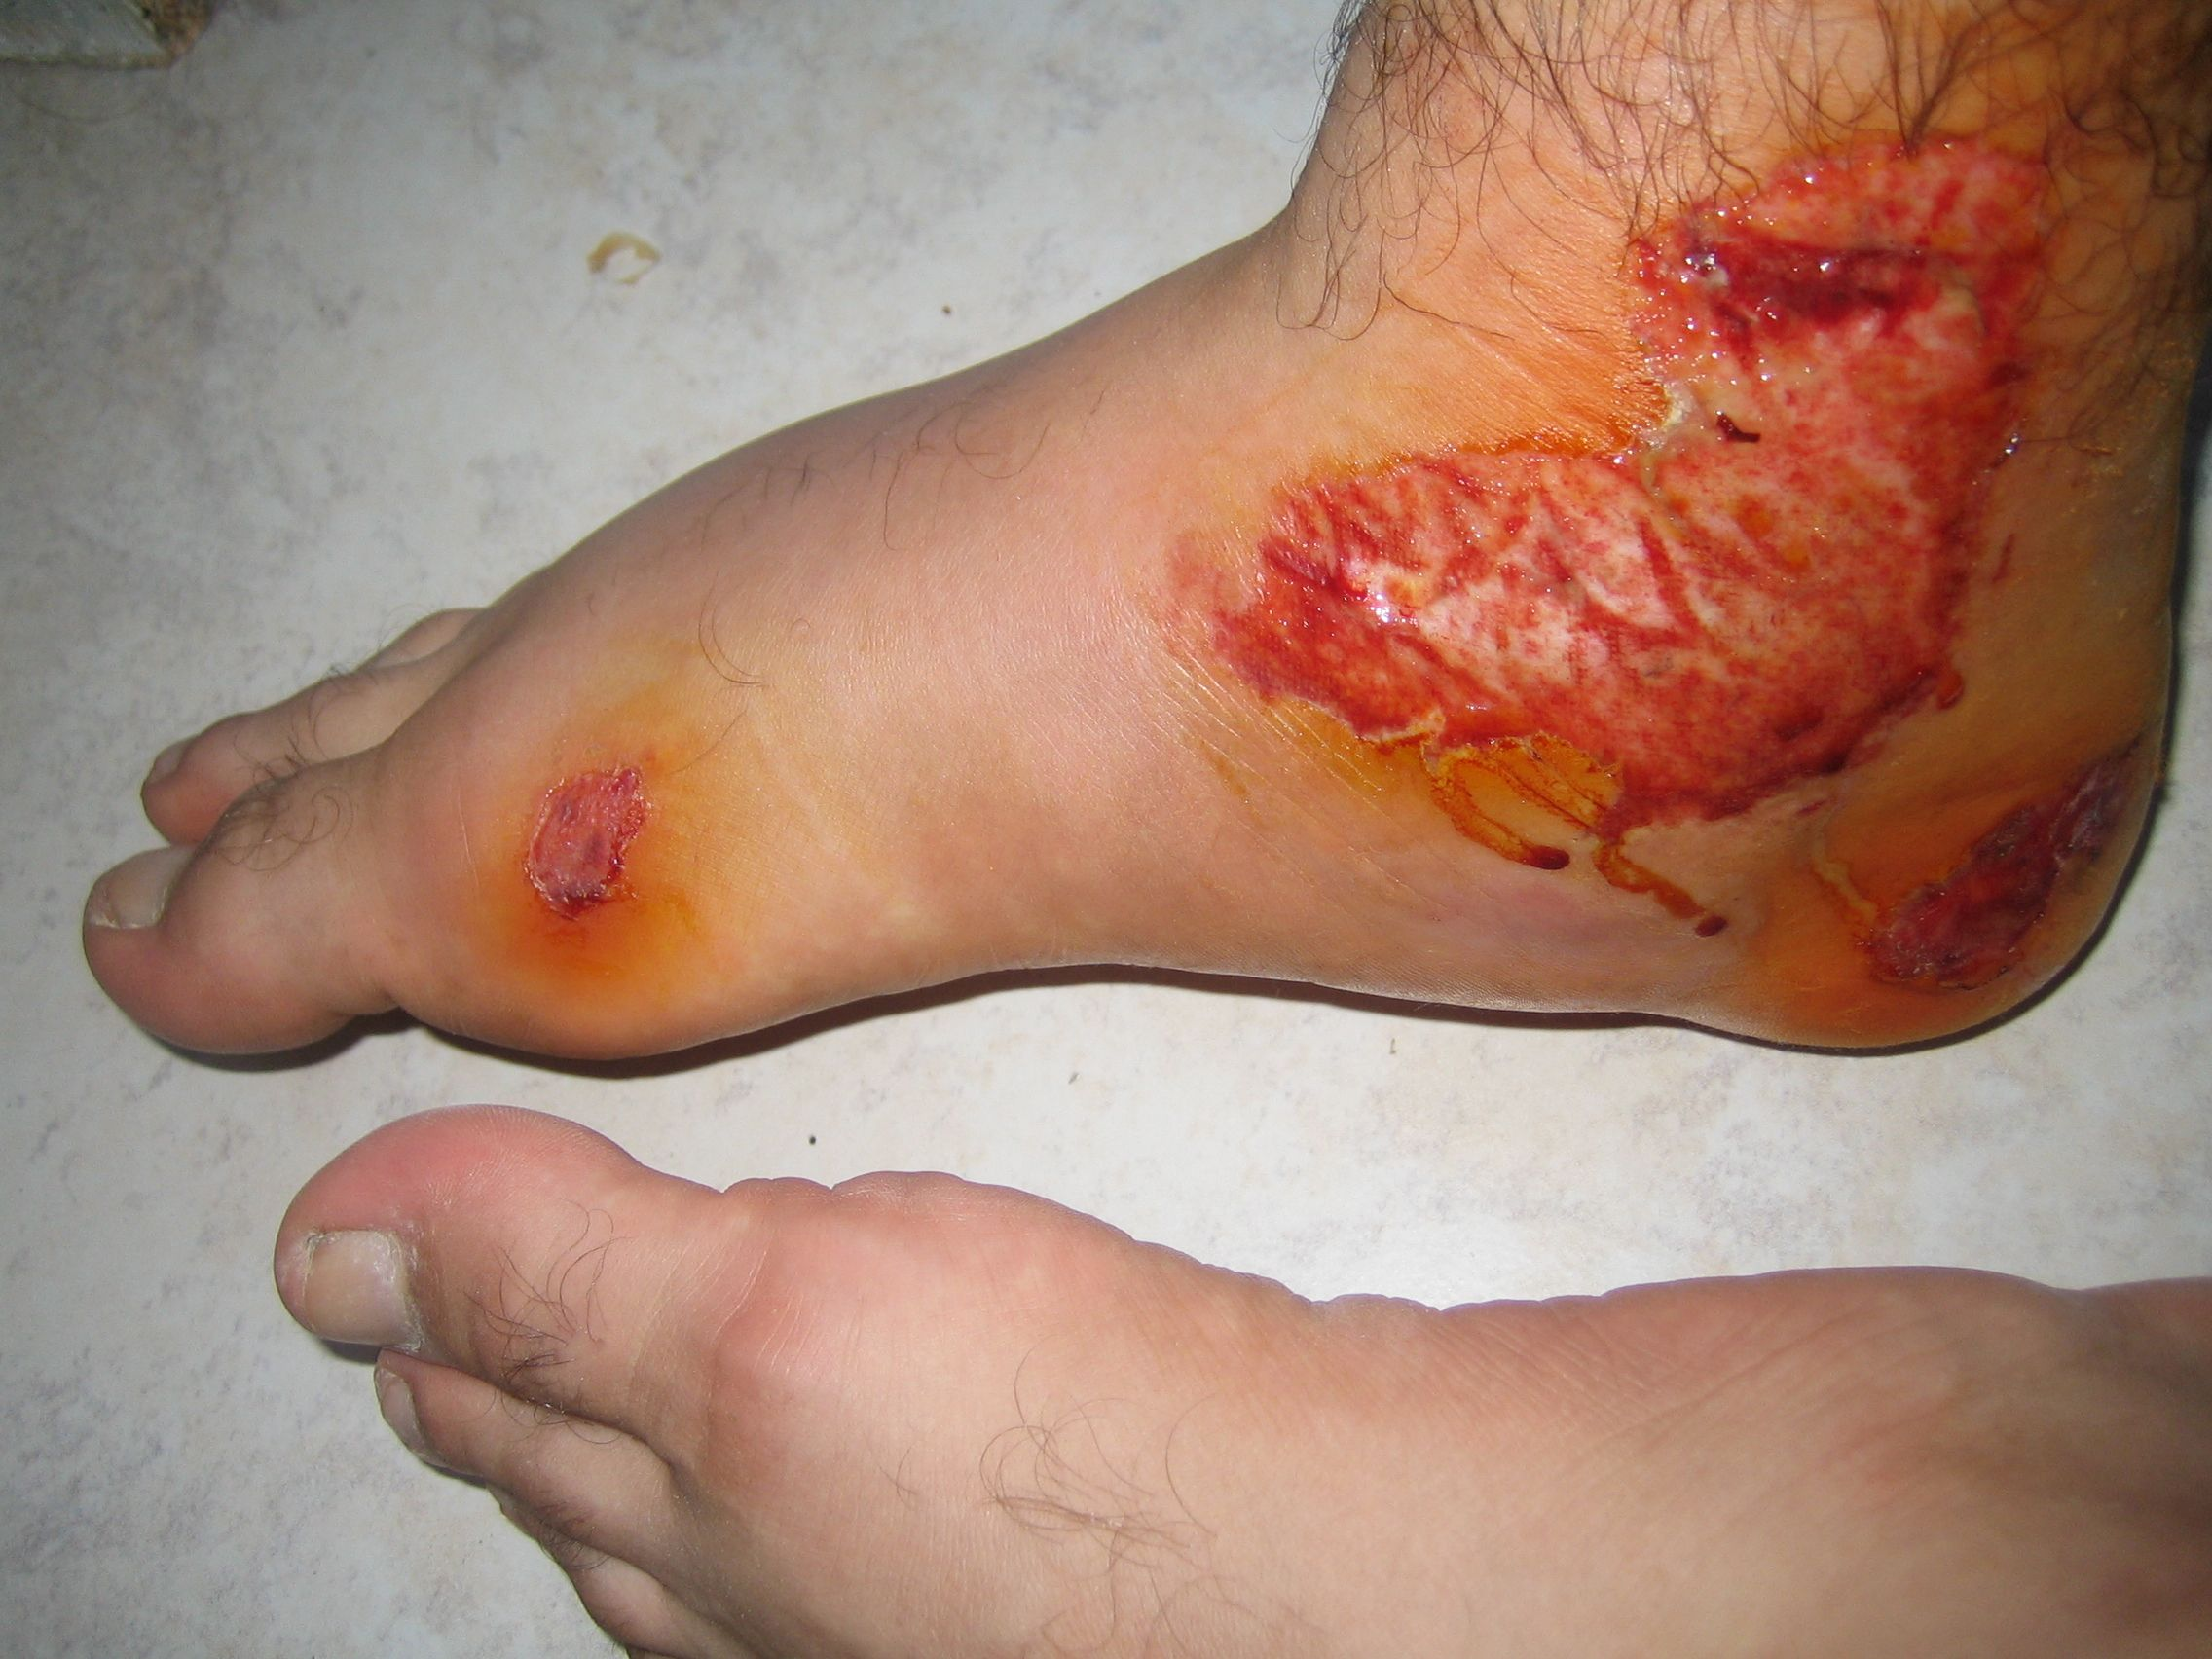 wound open abrasion graze scrape injury on foot and ankle